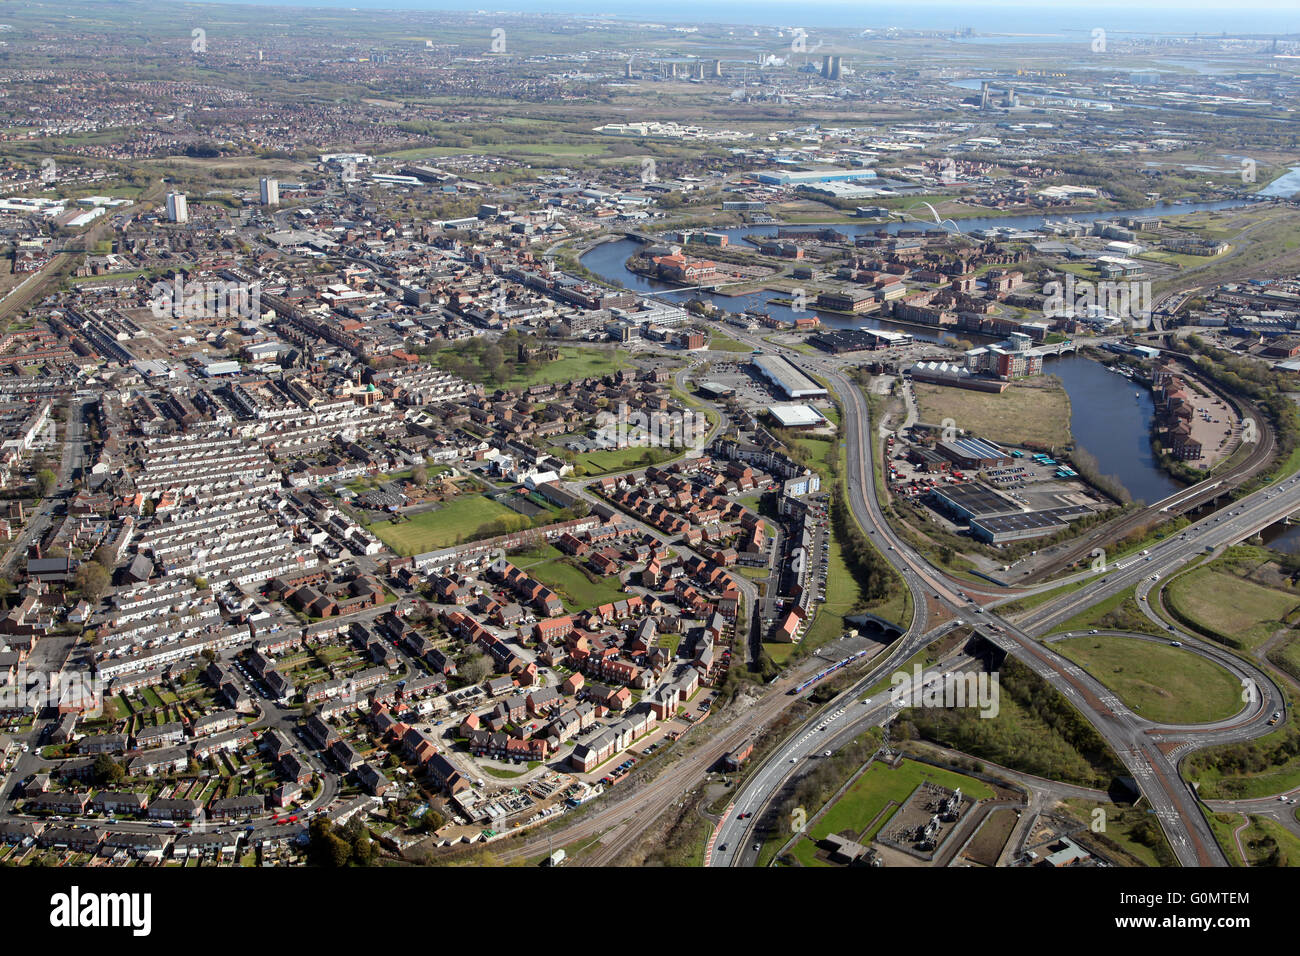 aerial view of Stockton-on-Tees with the A66 & River Tees prominent, UK - Stock Image